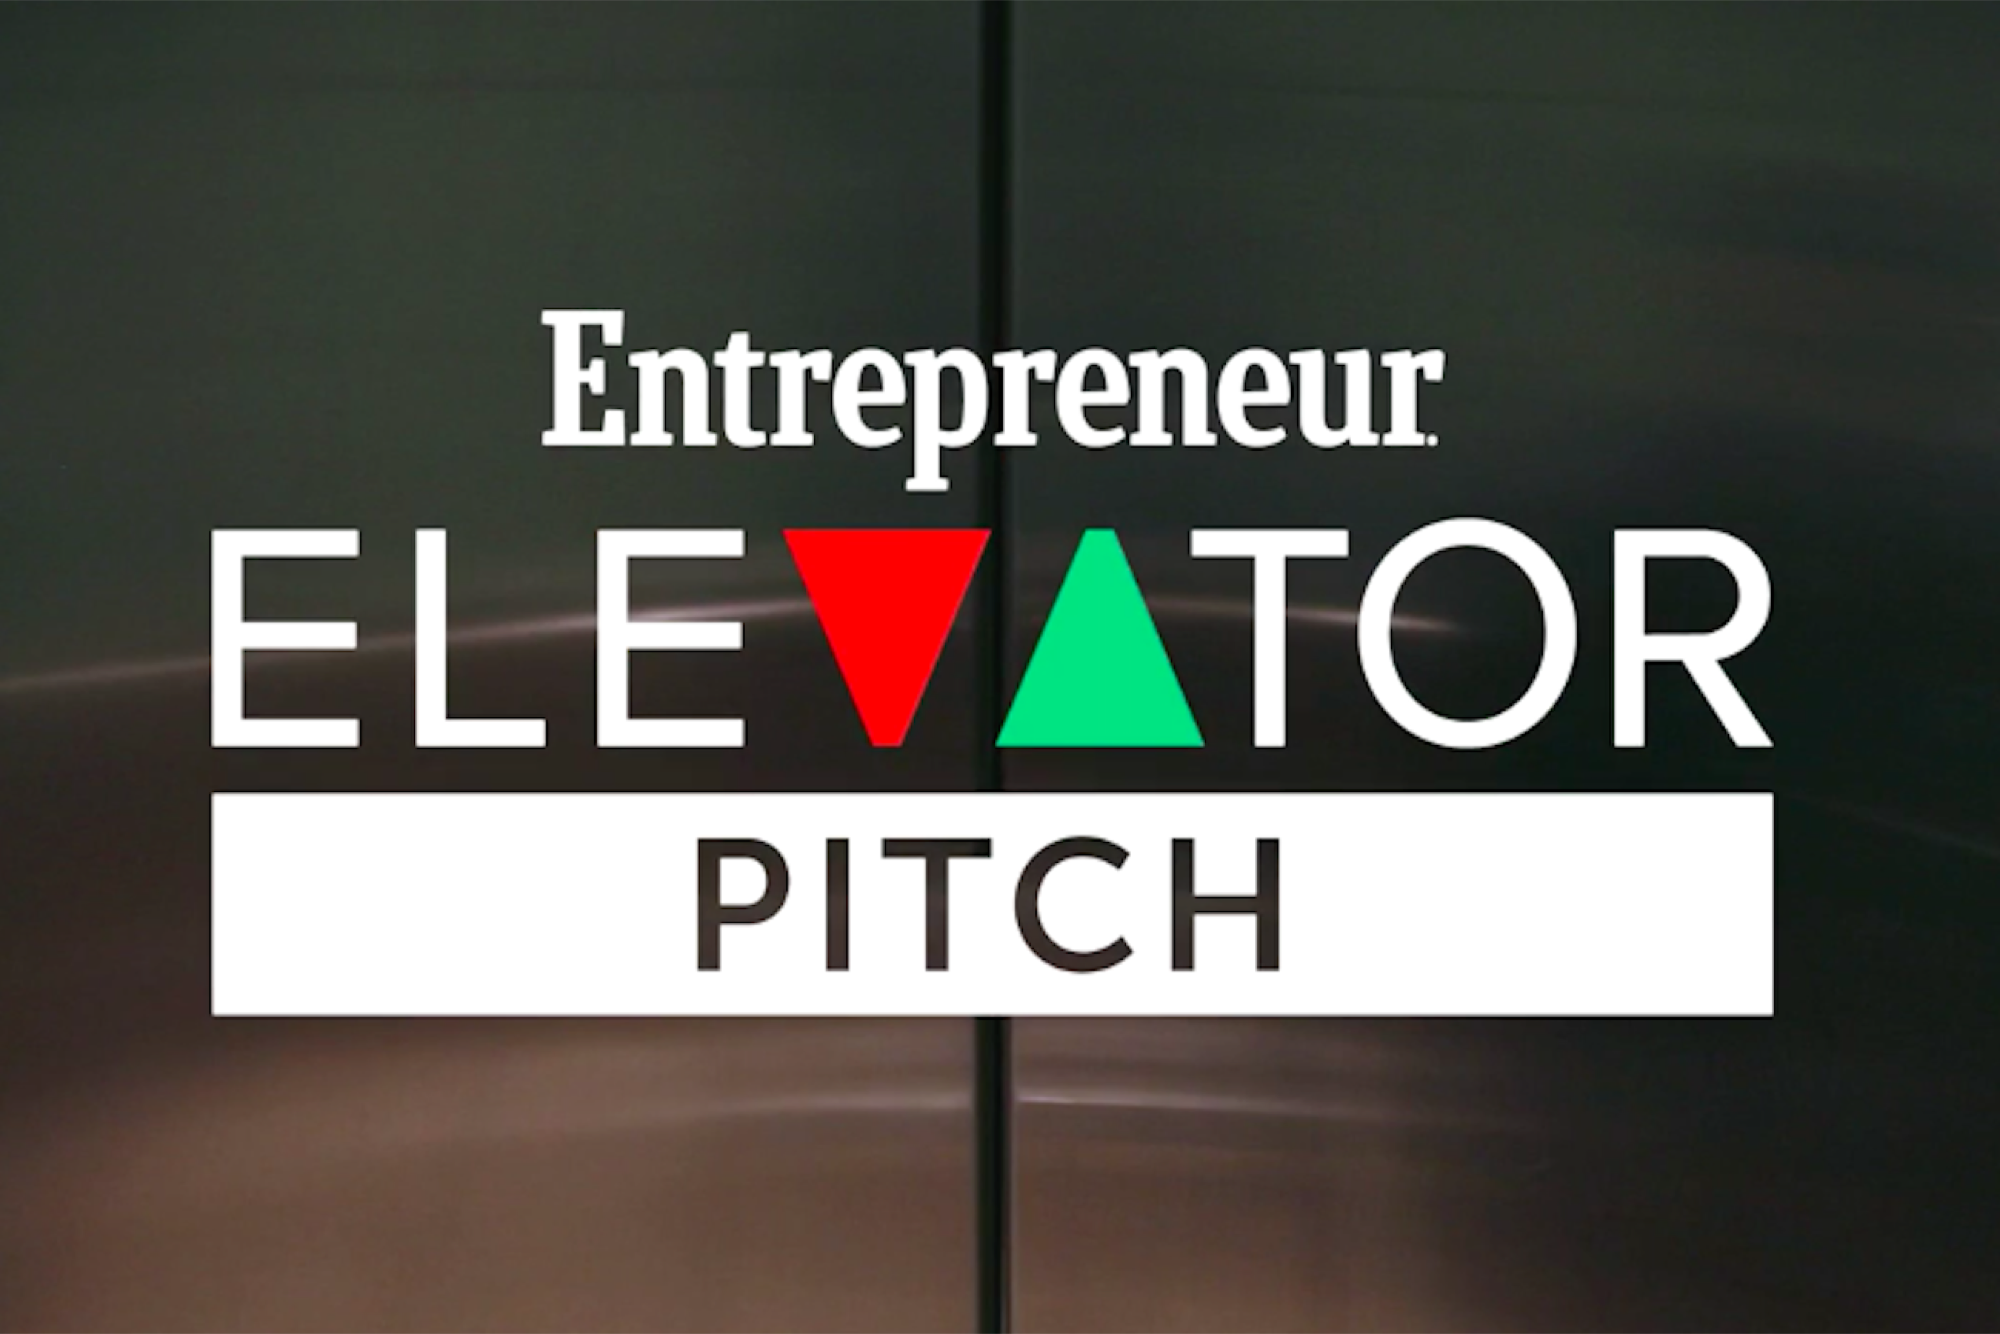 Elevator Pitch Ep. 8: 'Imagine If Jimi Hendrix and Beethoven Got Together for an Epic Jam'